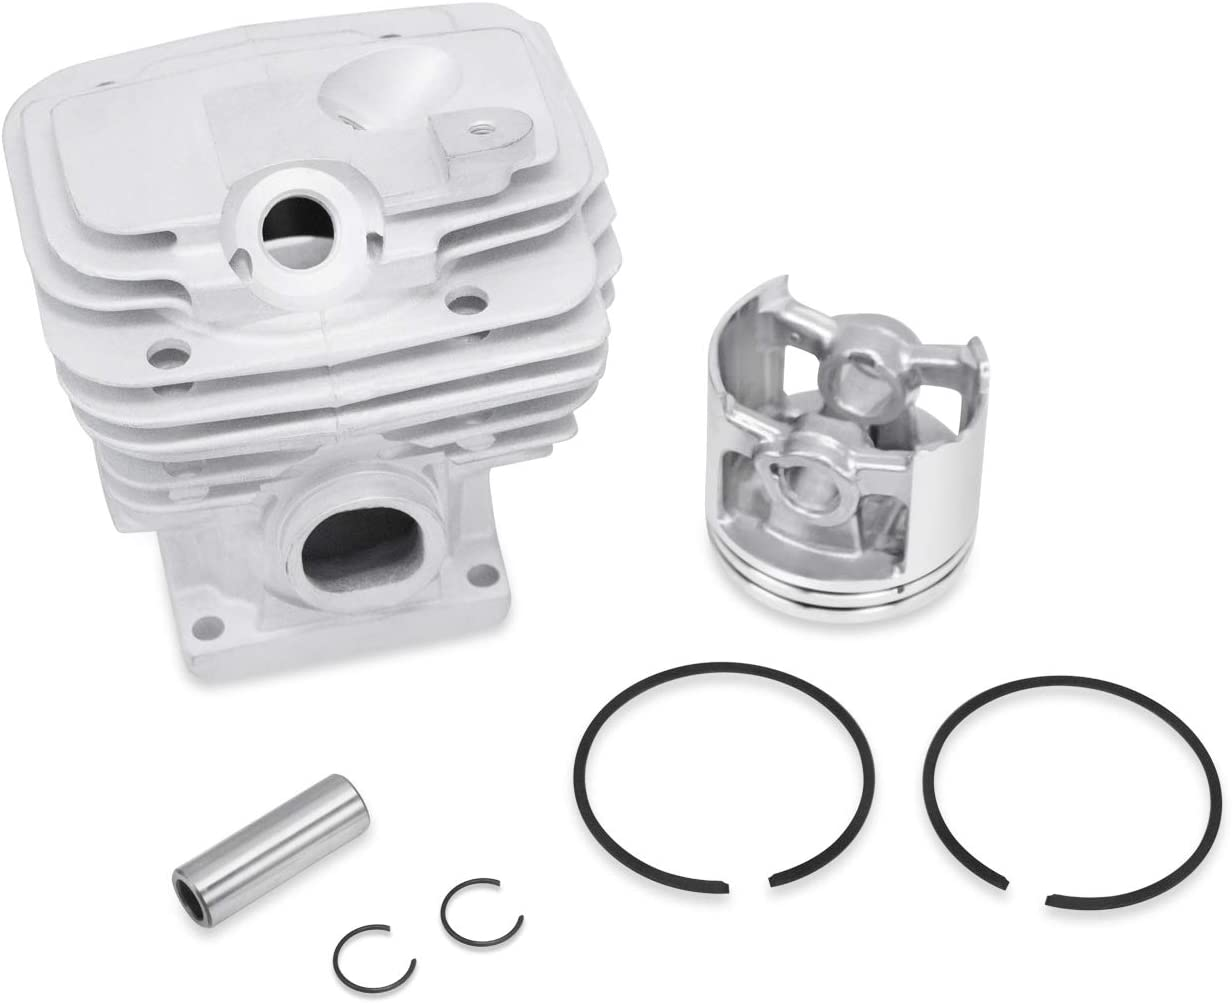 Everest Parts Supplies Cylinder depot Piston Kit Stihl Popular brand Compatible with